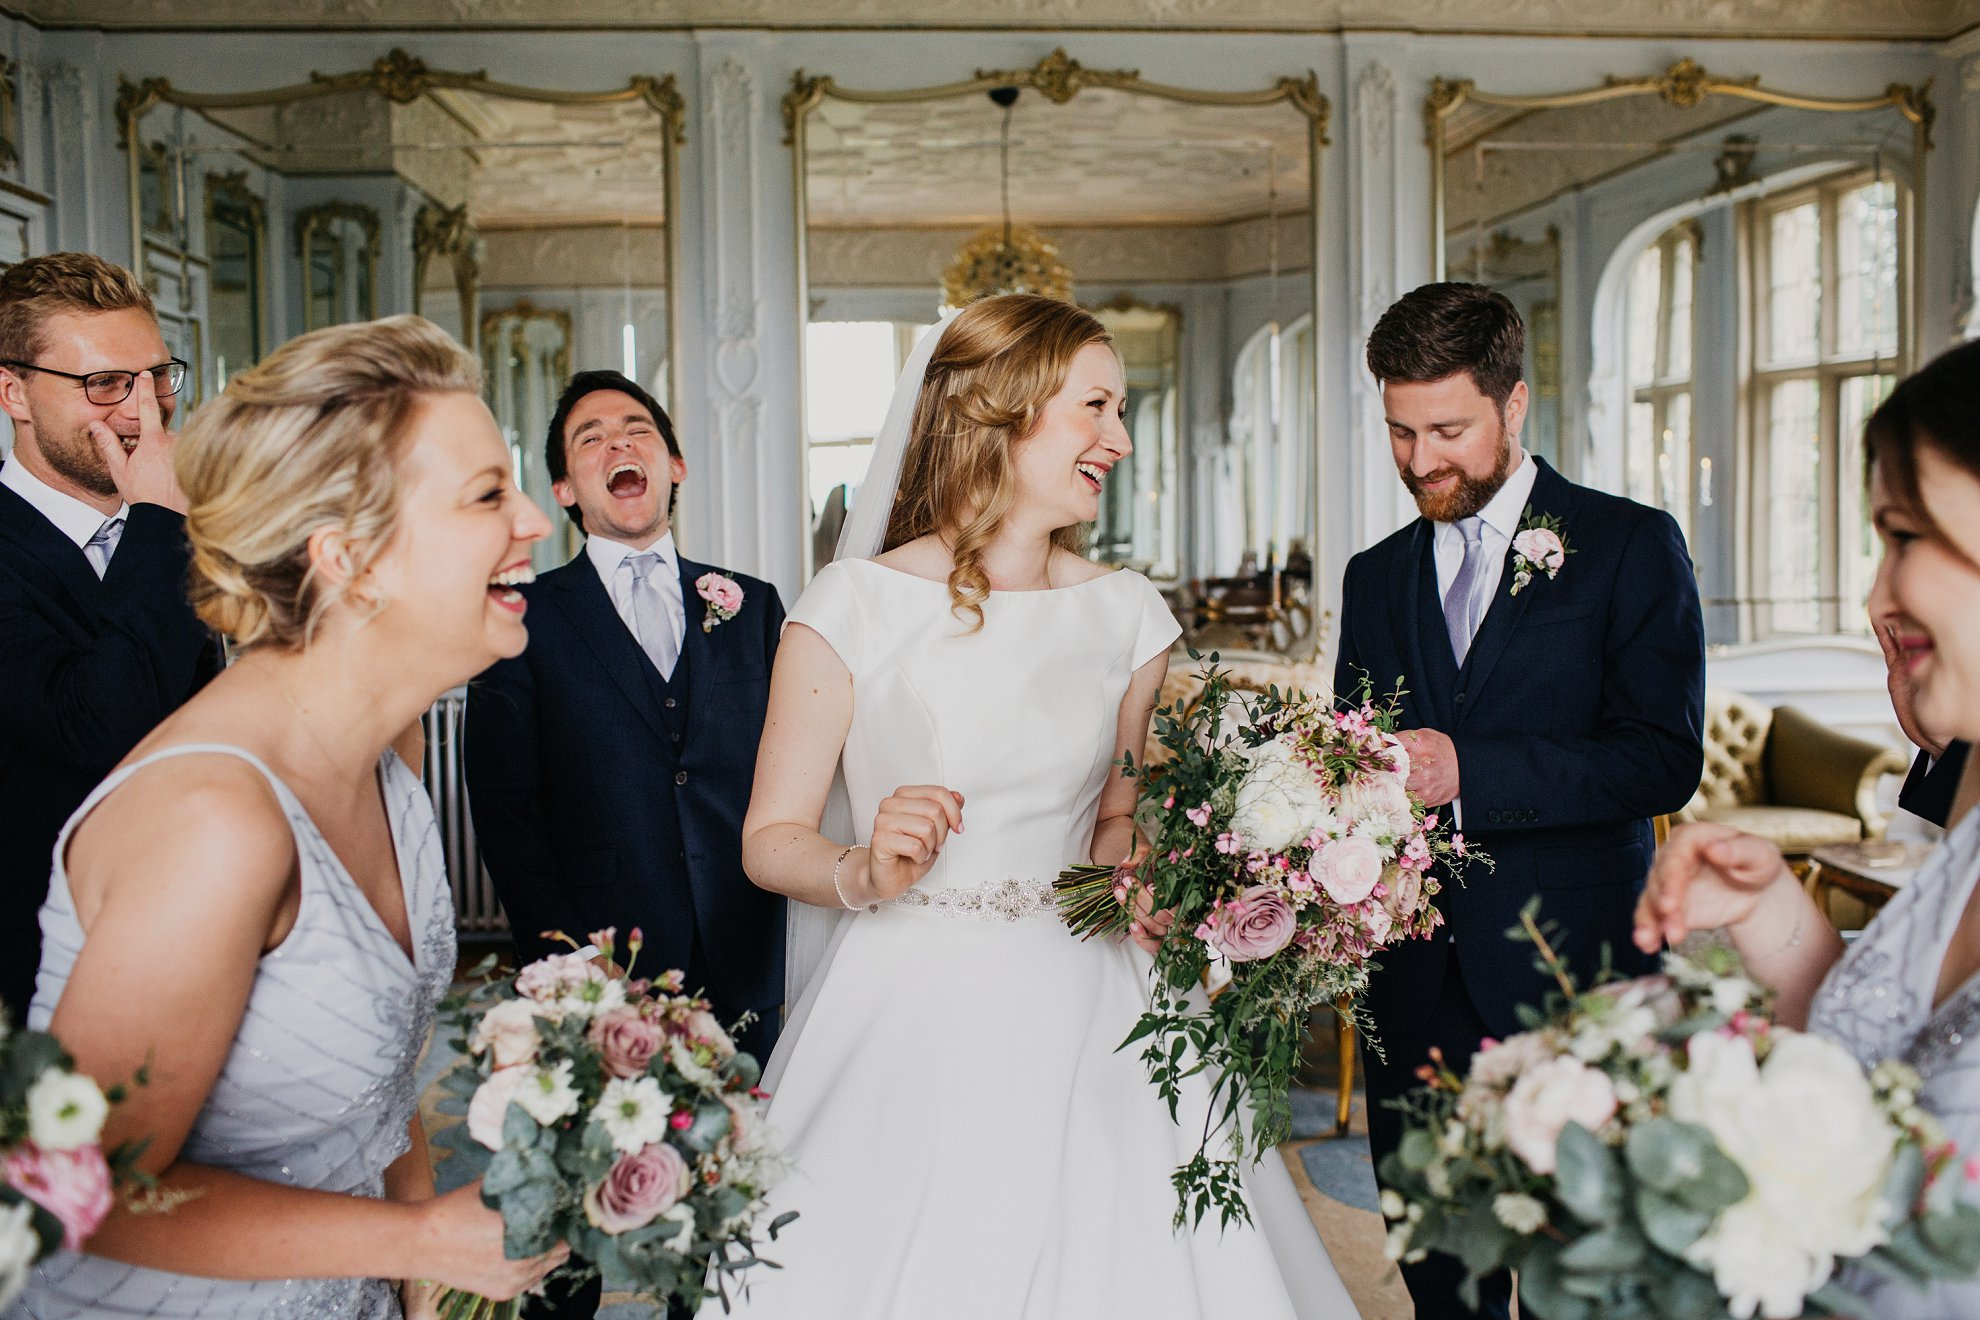 thornbridge hall weddings